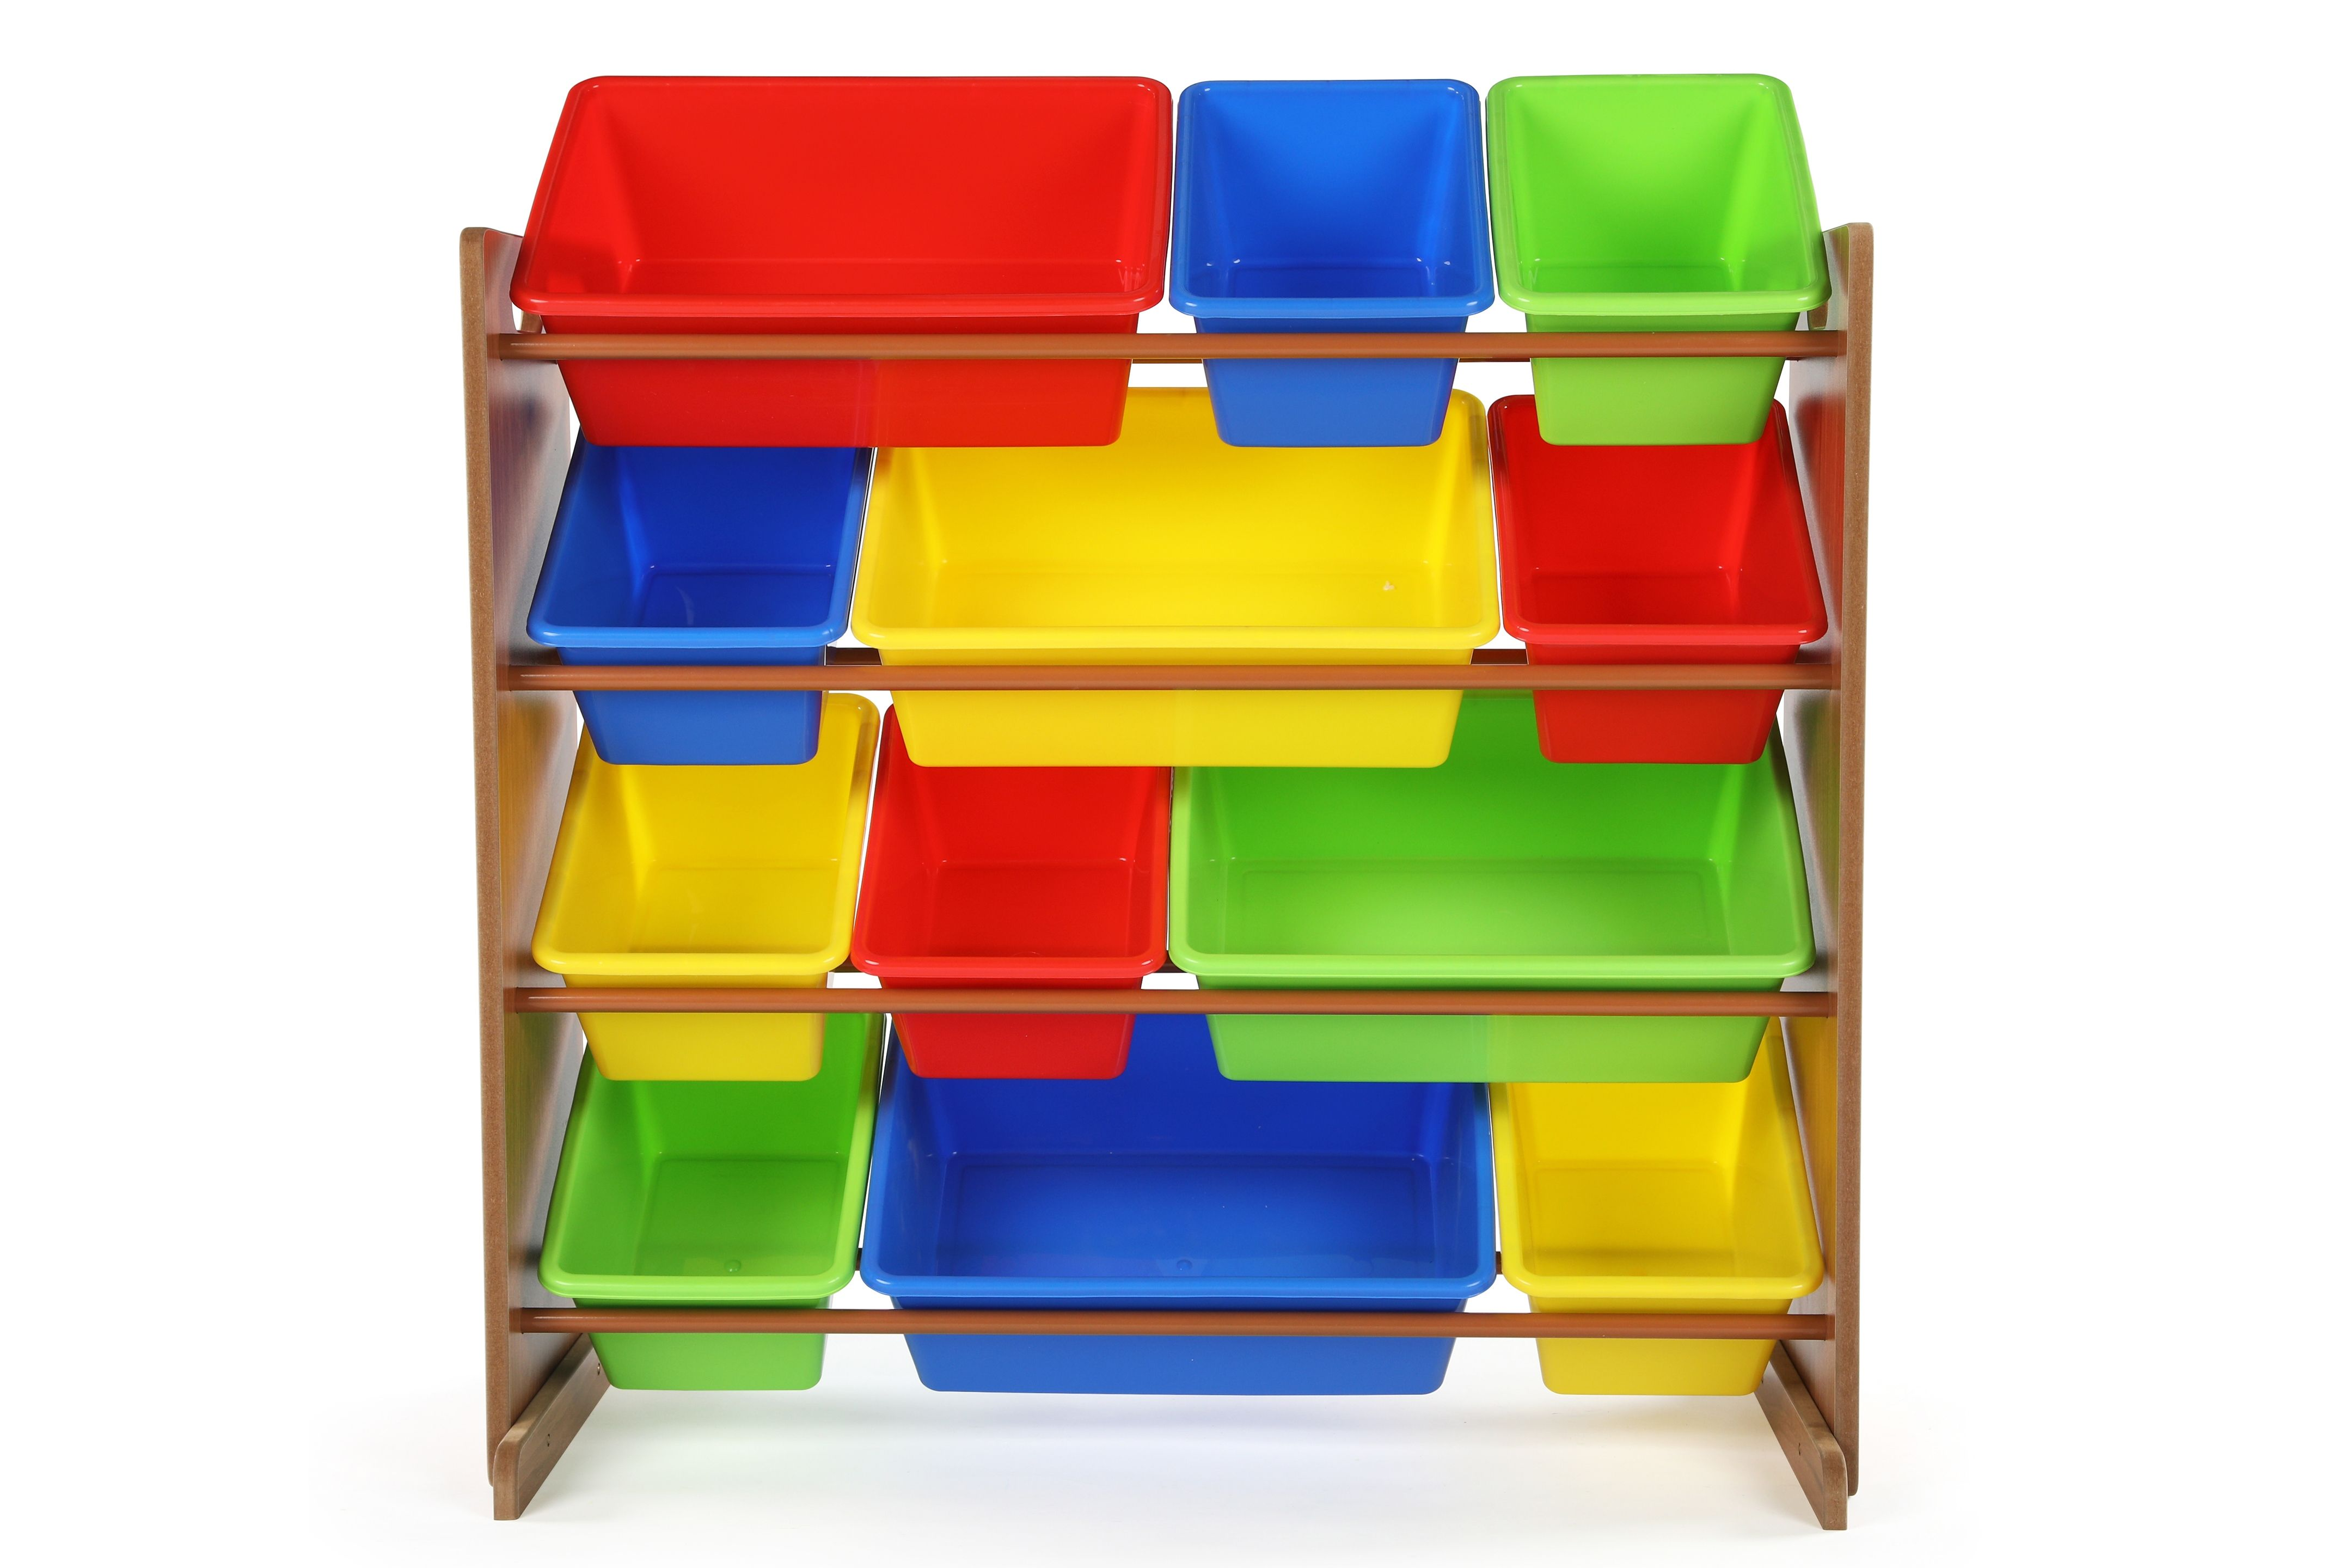 Kids Highlight Toy Storage Organizer With Twelve Plastic Bins Pine Toy Storage Organization Kid Toy Storage Plastic Bins